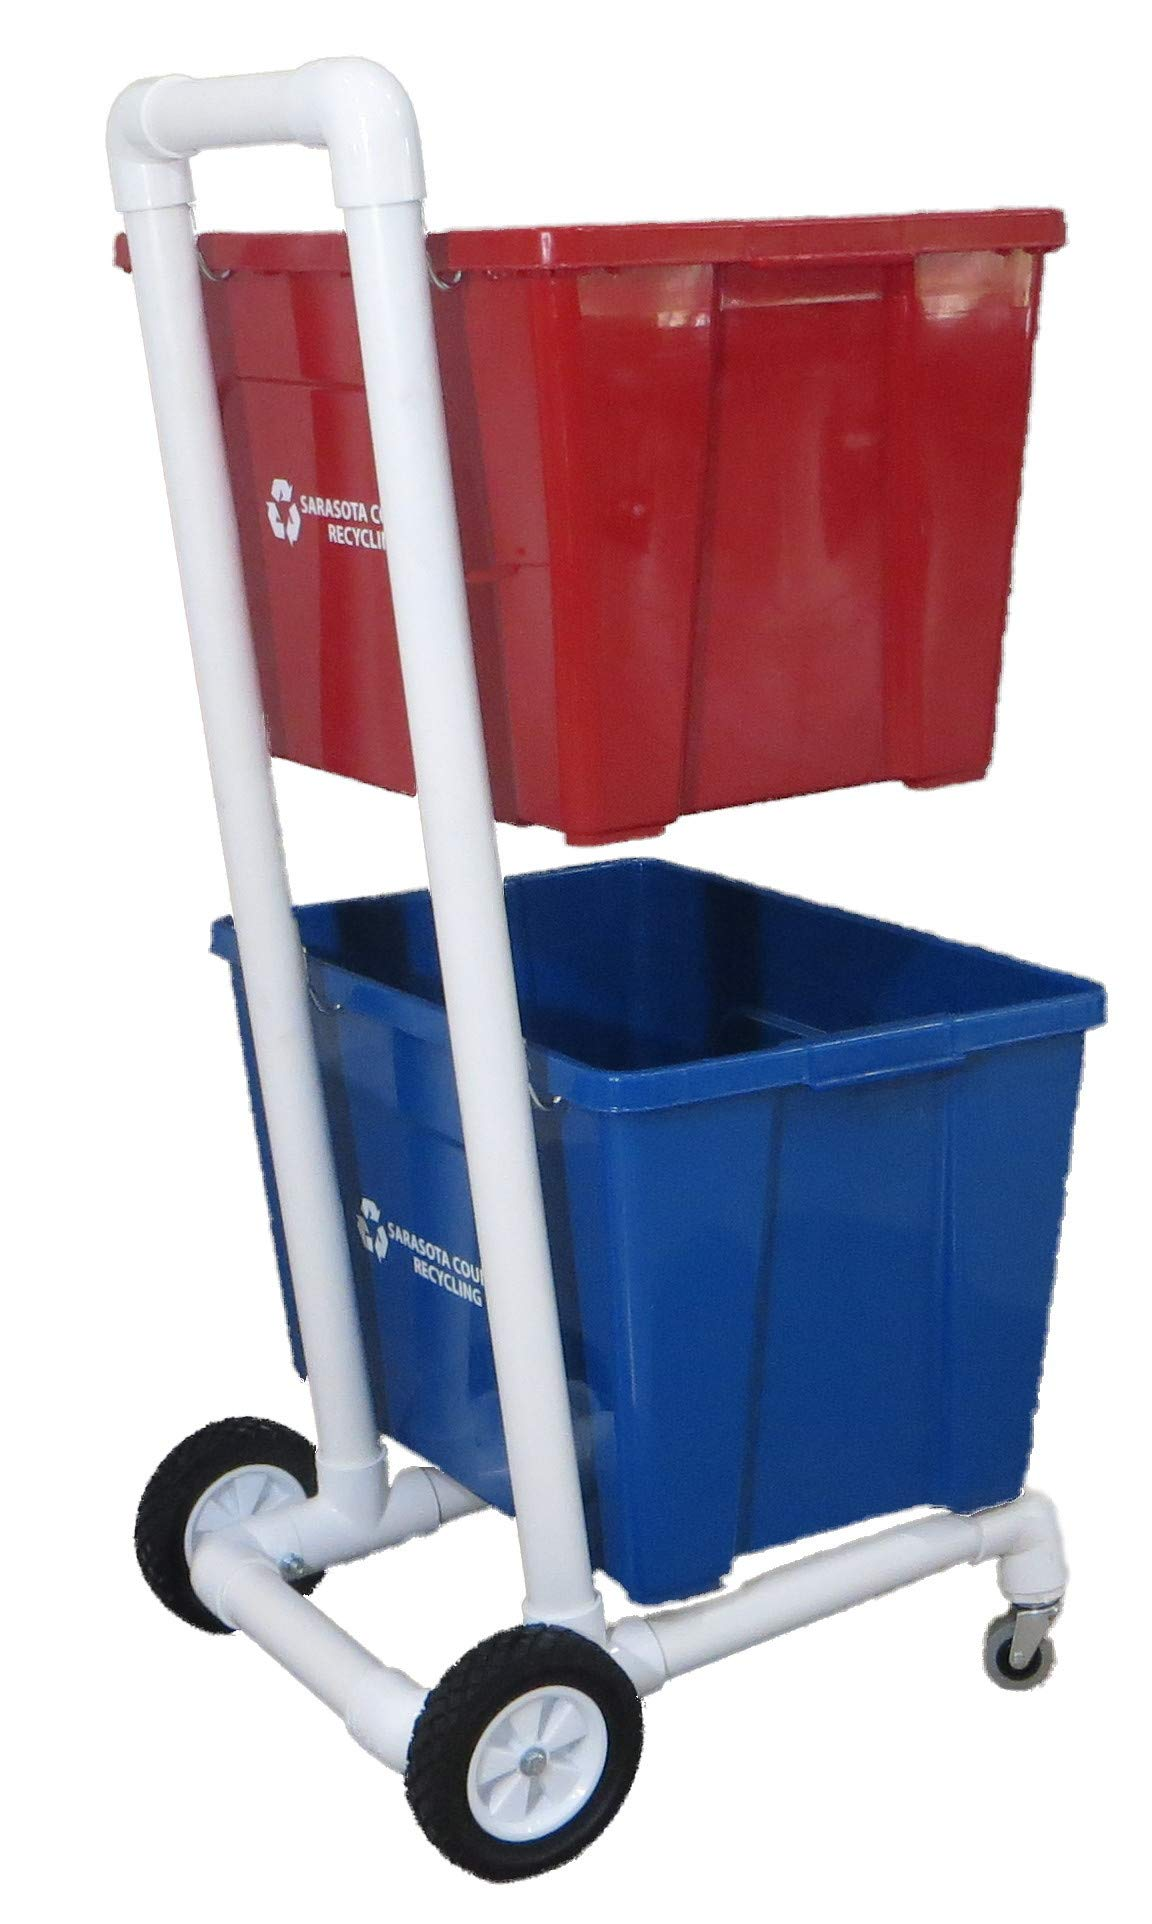 Recycling Cart 4 Wheels for Easy Rolling |  | 1-1/2'' PVC | Heavy Duty | Will Not Rust!